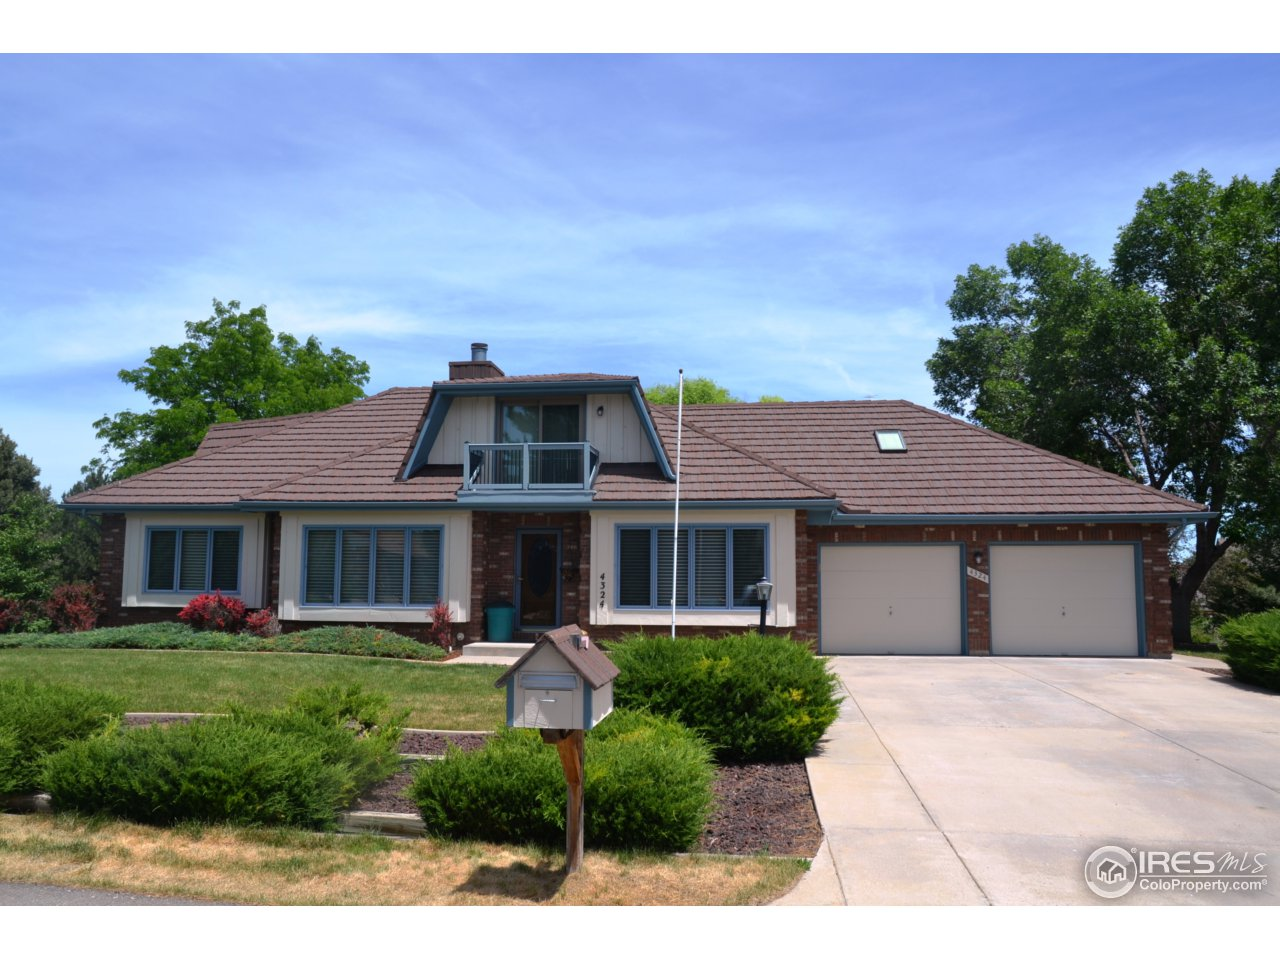 4324 Picadilly Dr, Fort Collins, CO 80526